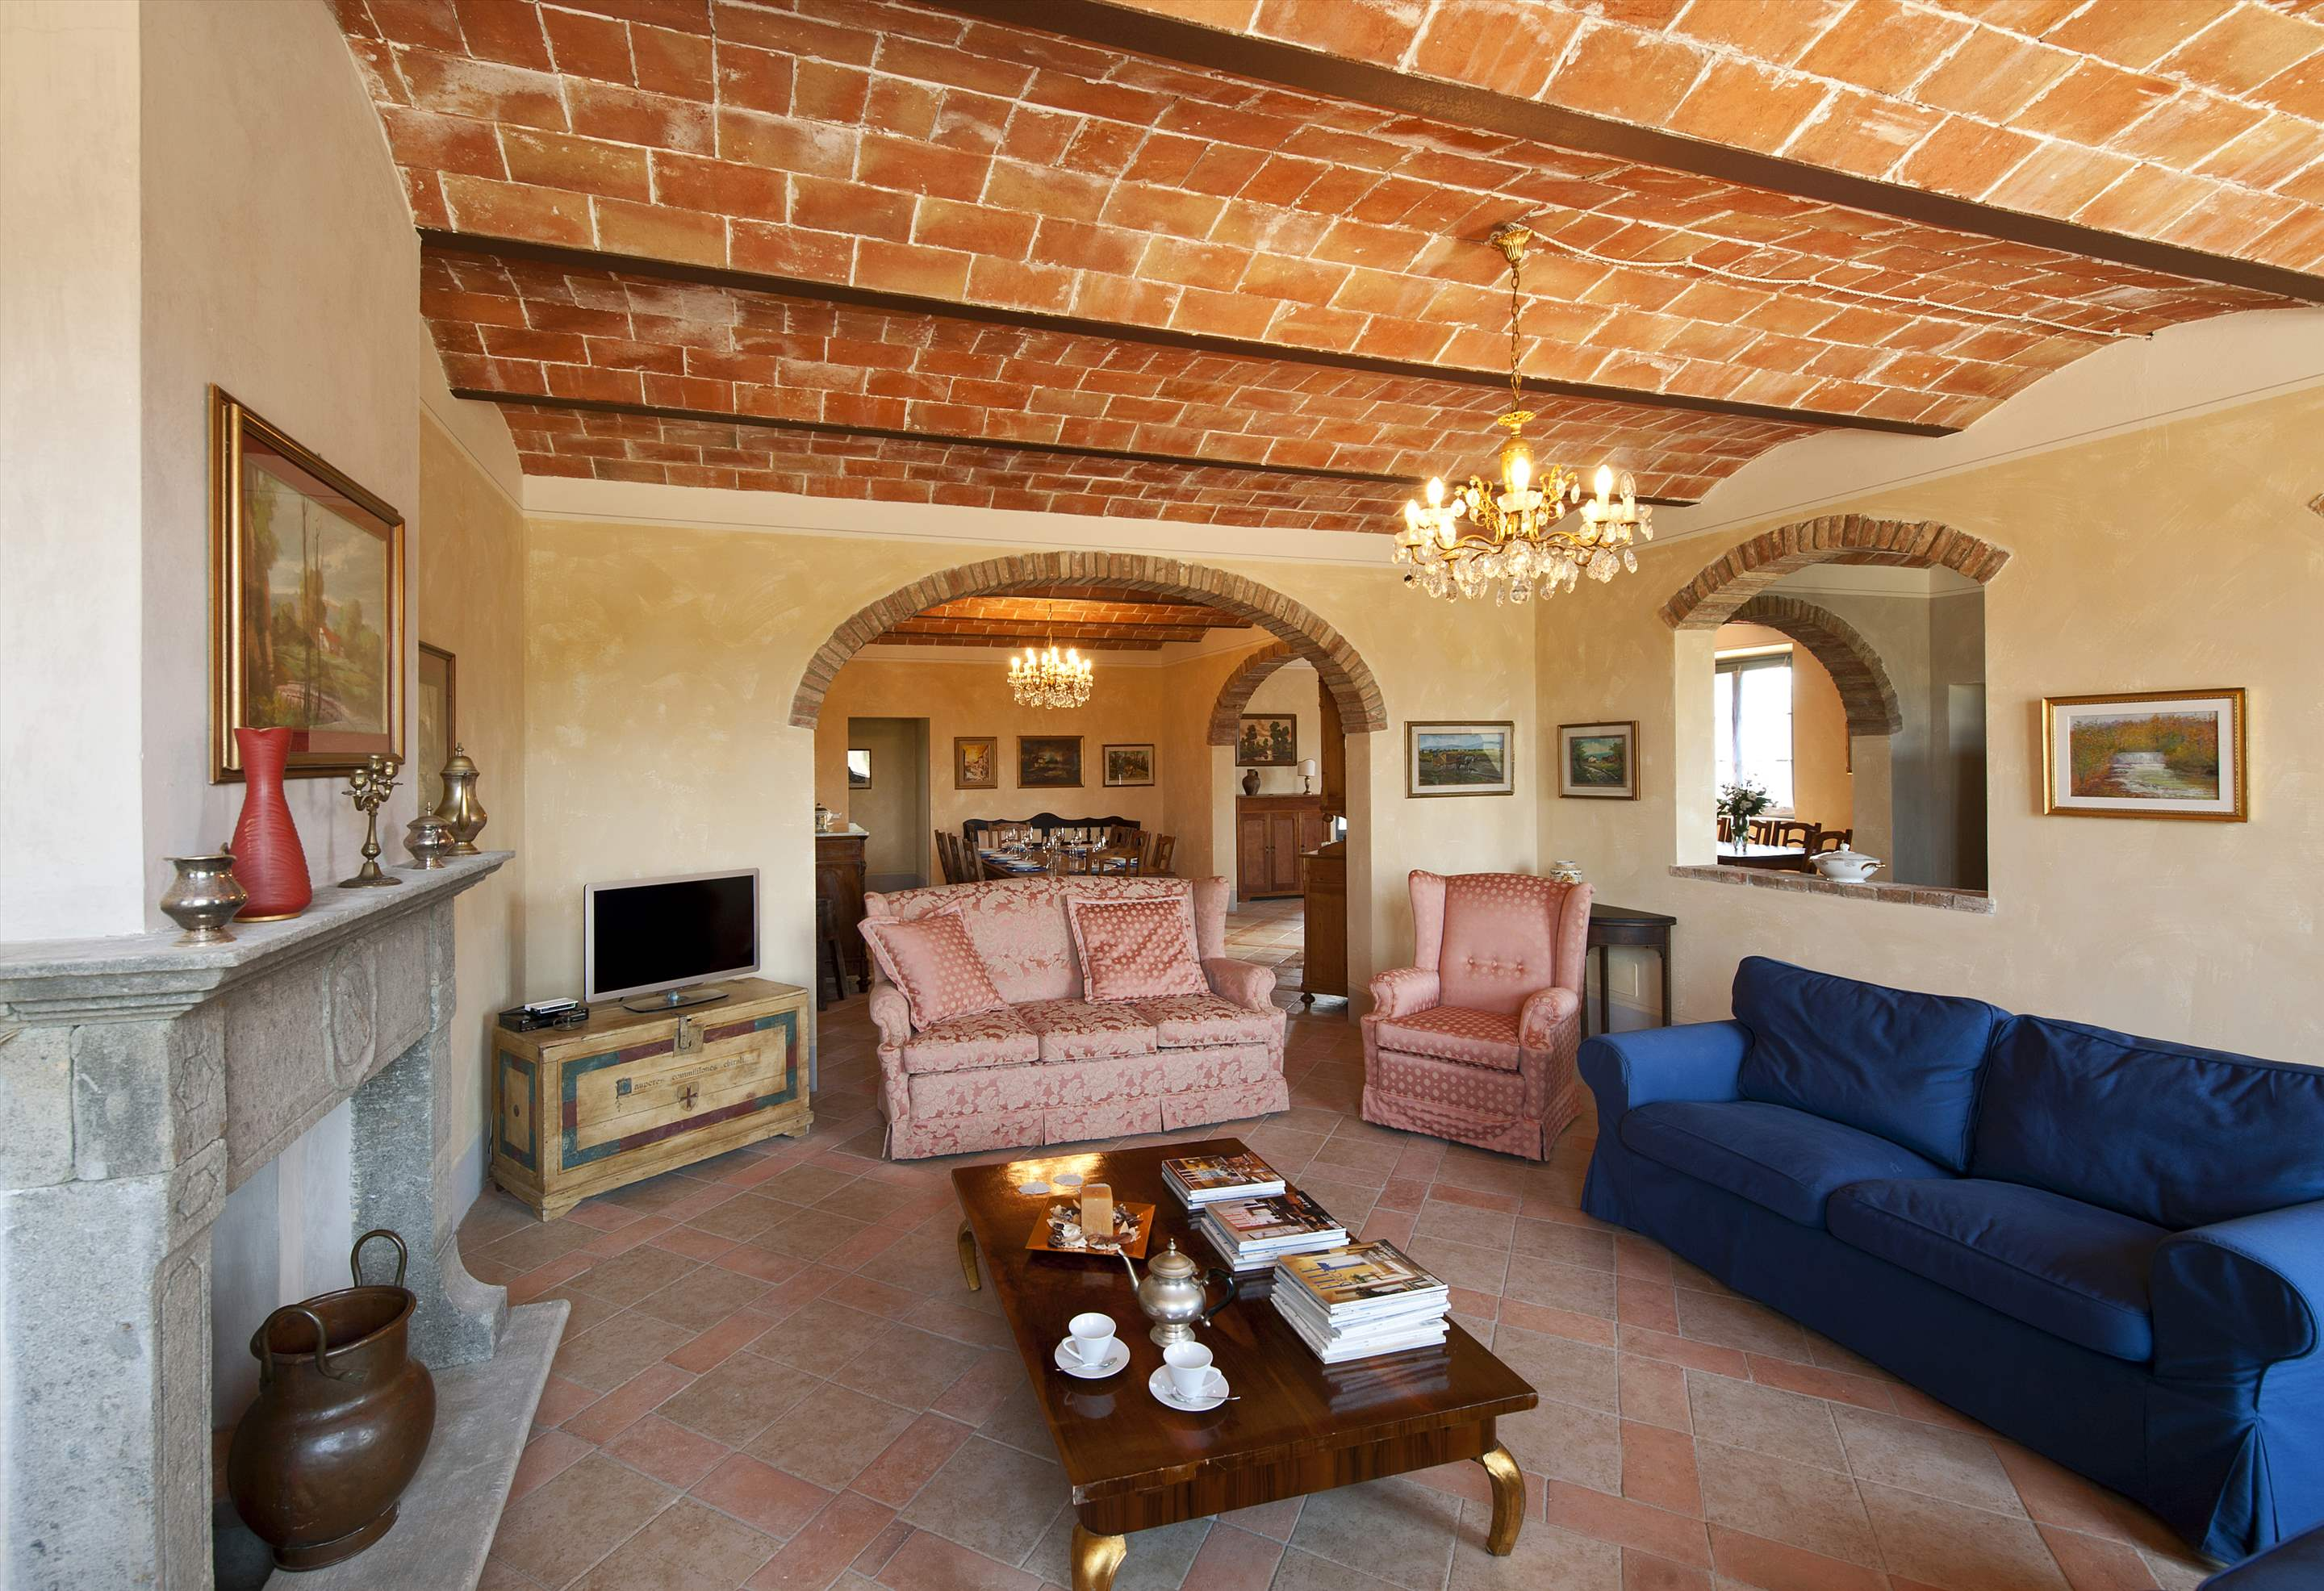 Podere Casacce, Ground Floor, 4 bedroom villa in Tuscany Coast, Tuscany Photo #5